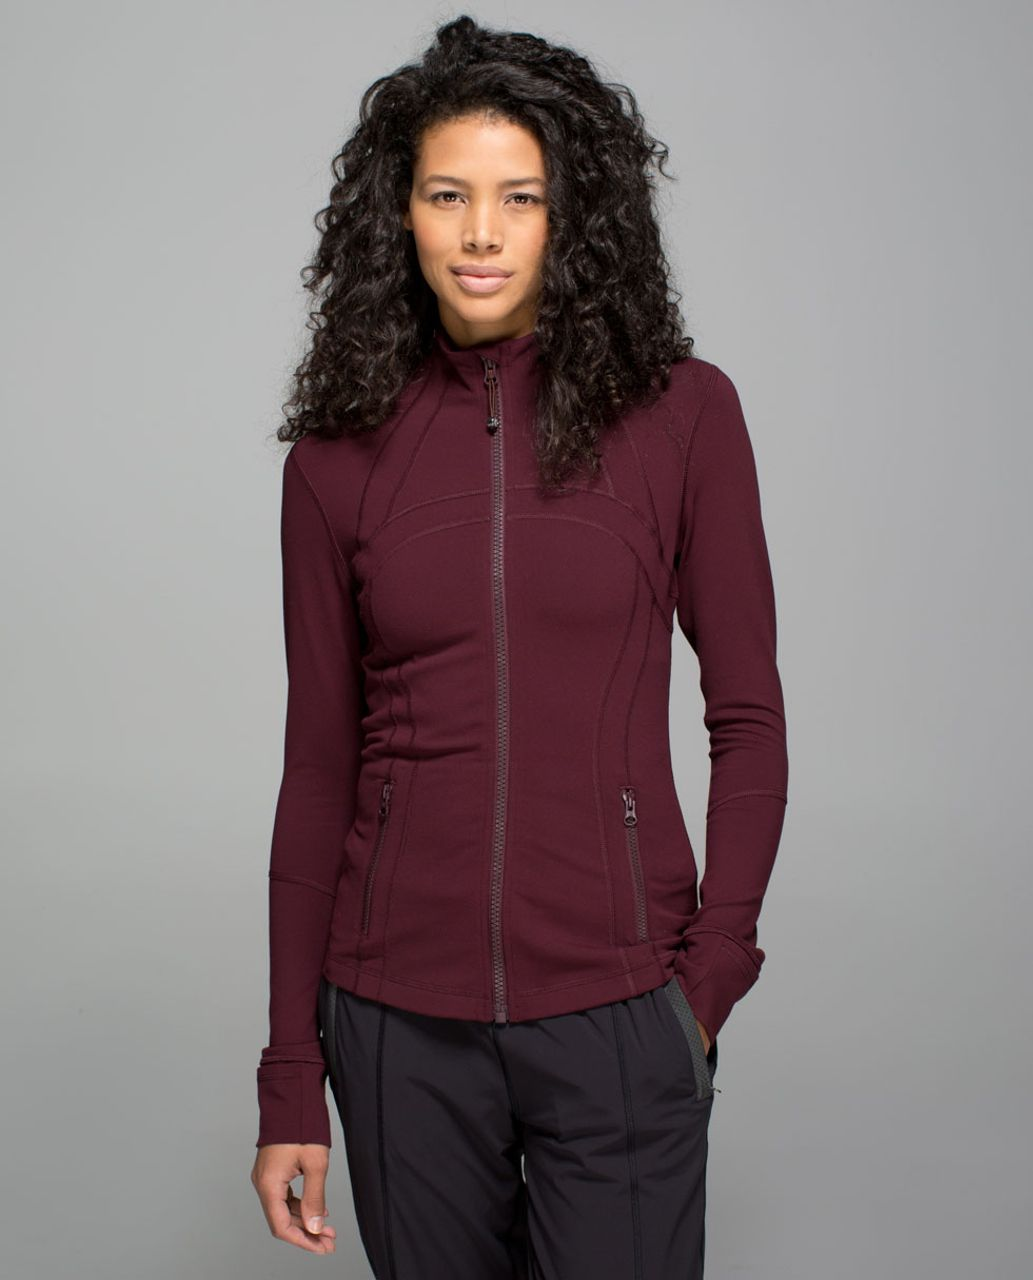 Lululemon Define Jacket - Bordeaux Drama